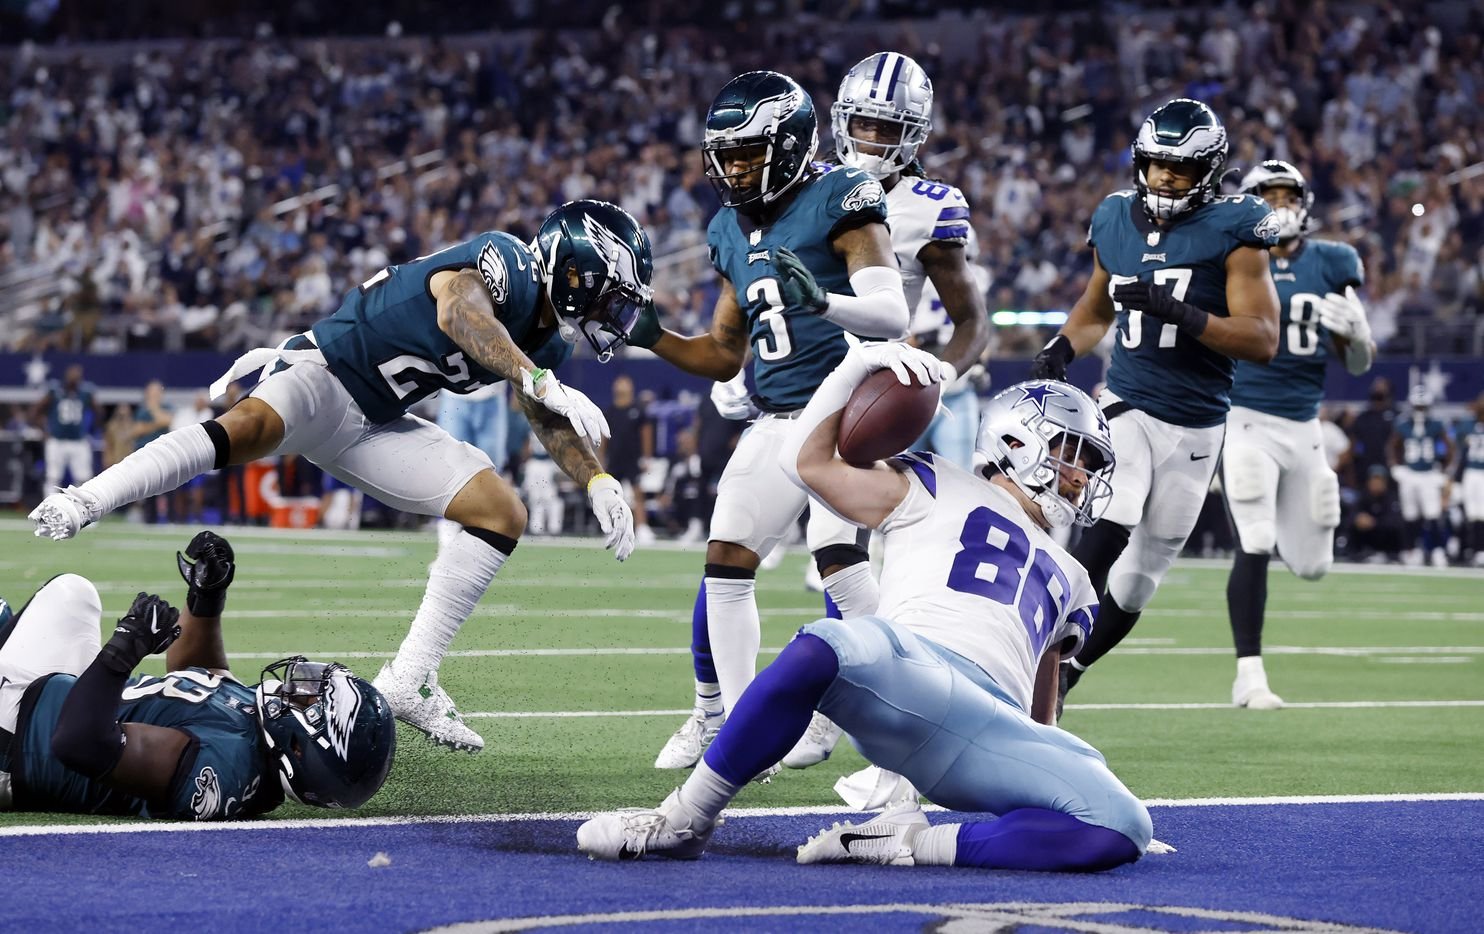 Dallas Cowboys tight end Dalton Schultz (86) slides into the end zone after running in a fourth quarter completion against the Philadelphia Eagles defense at AT&T Stadium in Arlington, Monday, September 27, 2021. (Tom Fox/The Dallas Morning News)